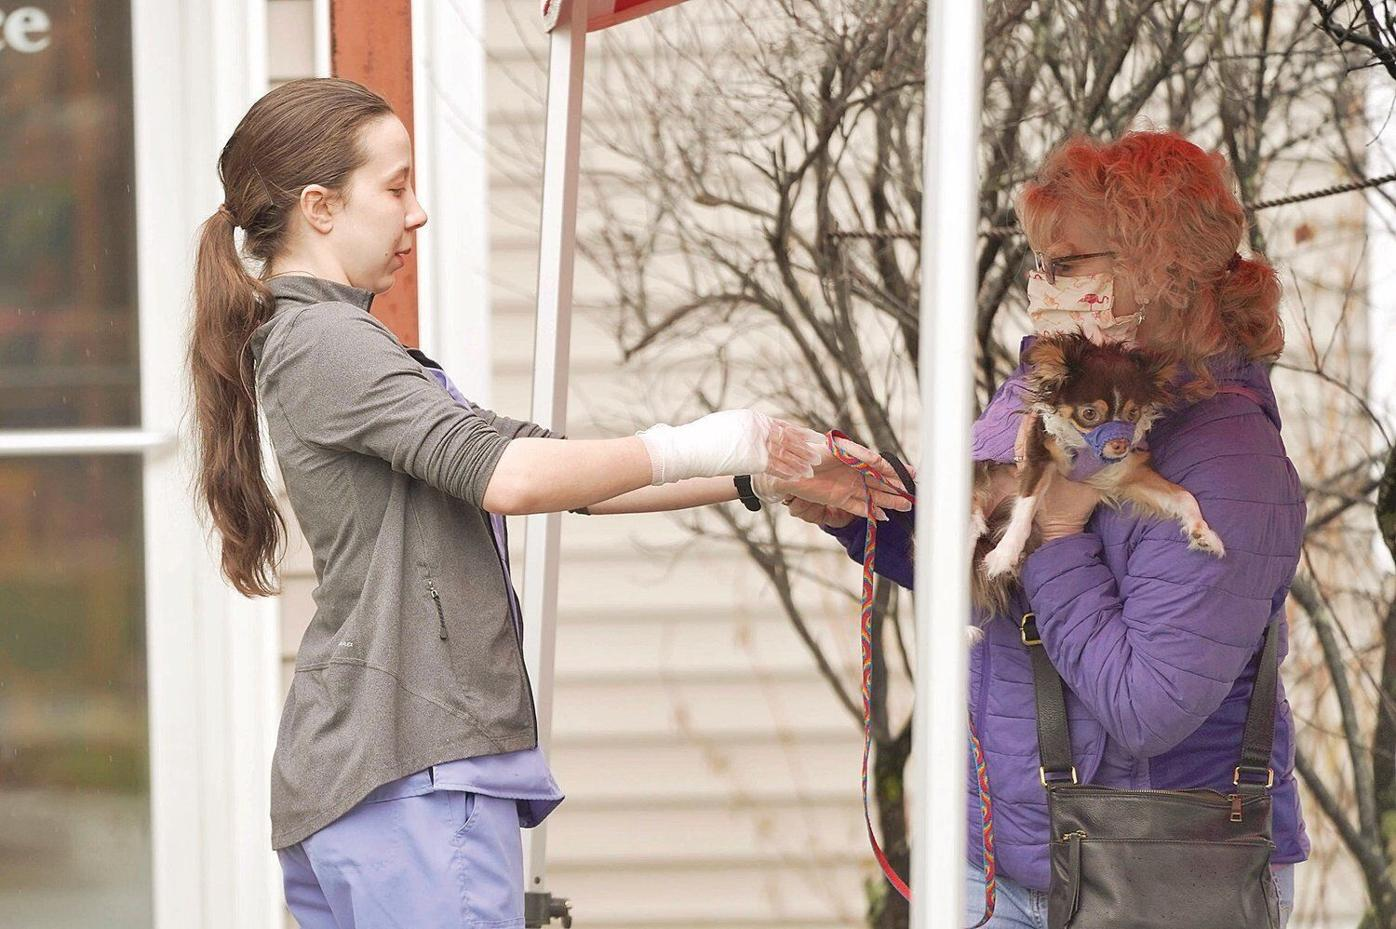 Berkshire veterinarians open for essential services; hours reduced